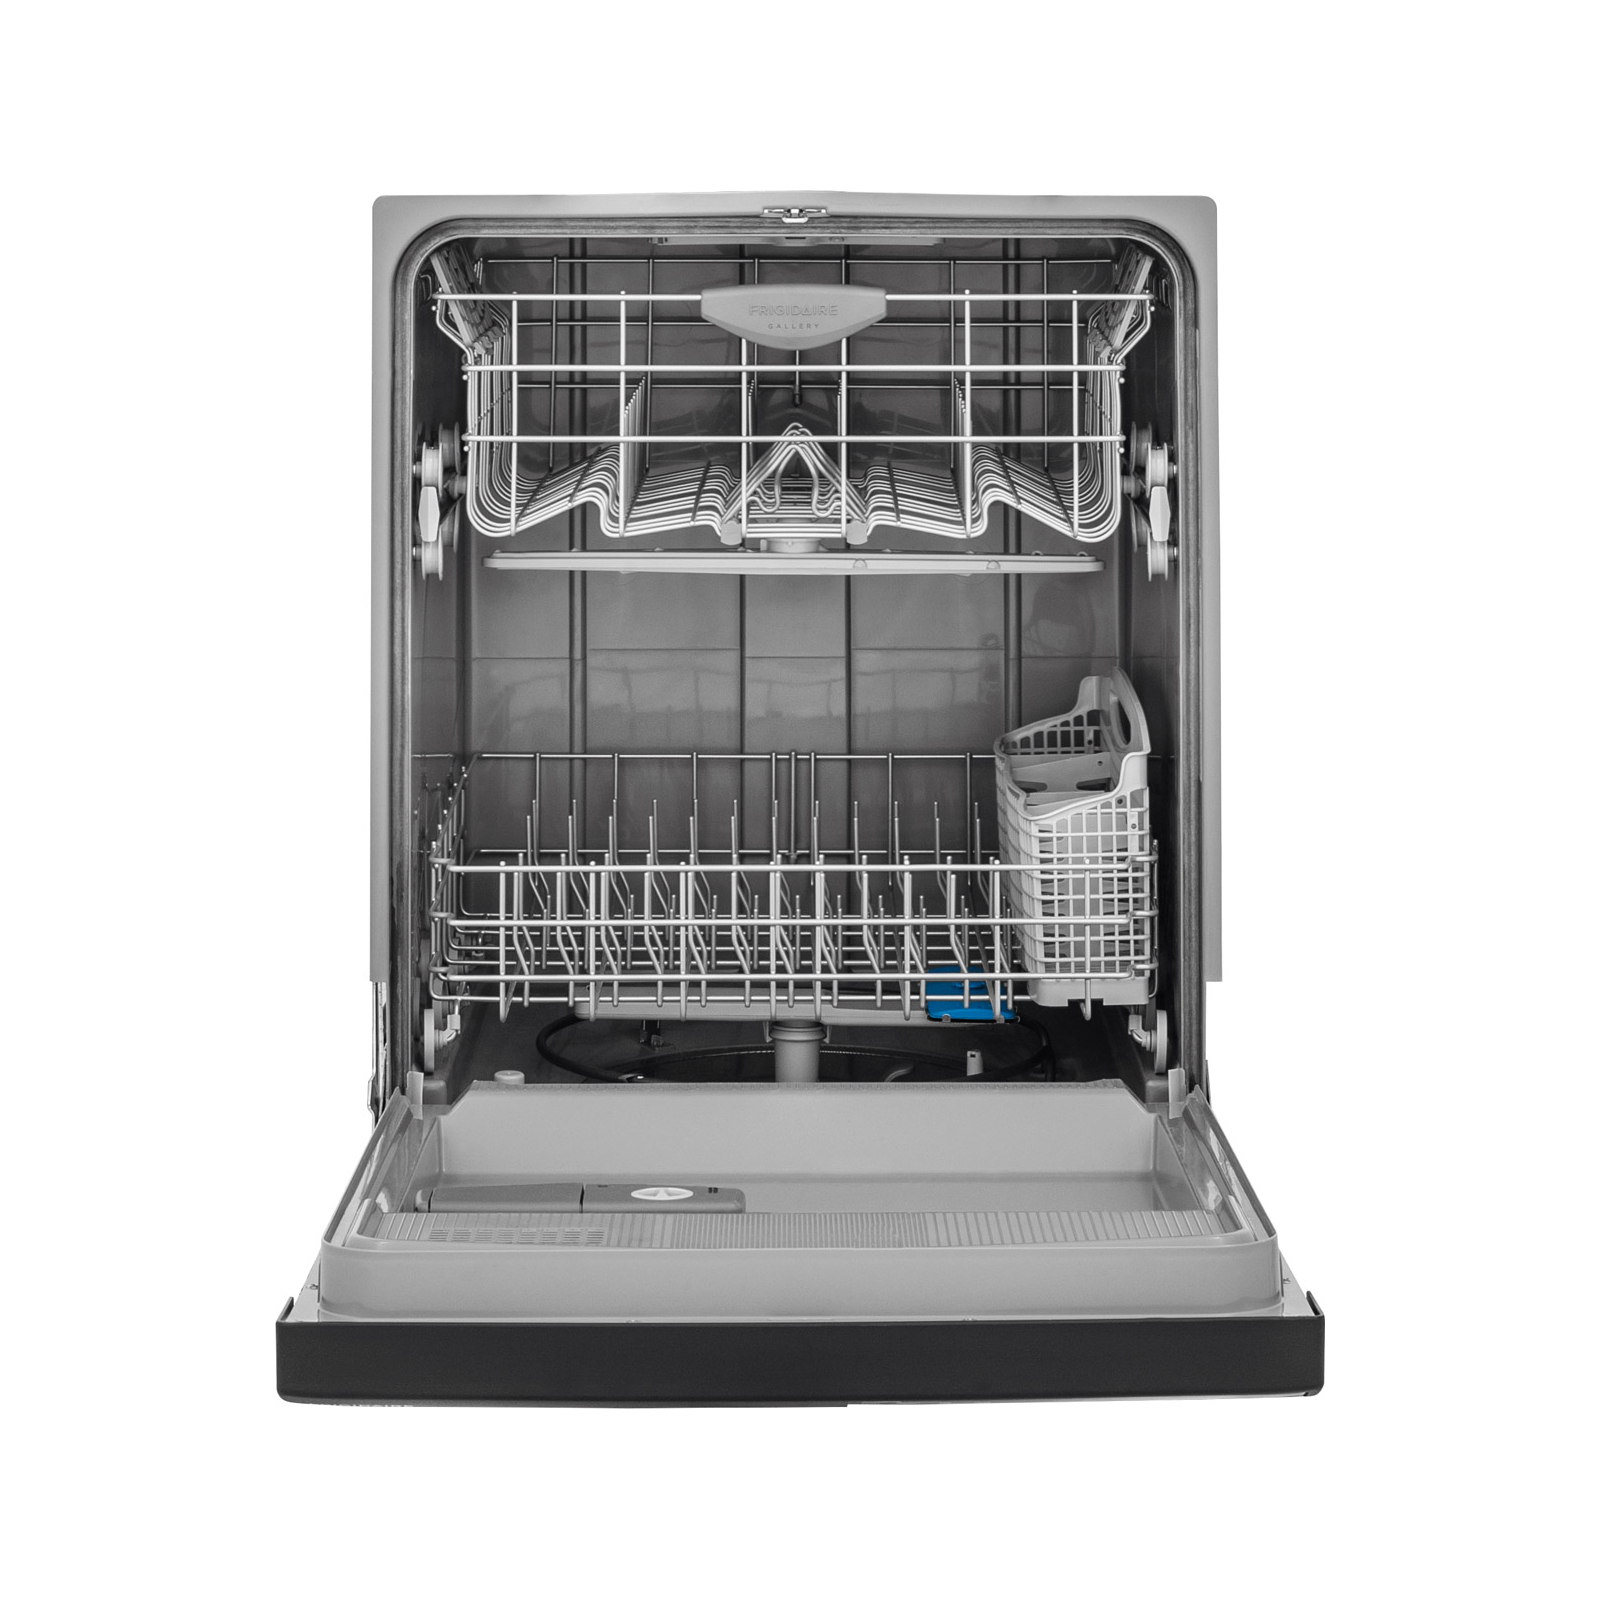 "Frigidaire Gallery FGBD2438PB Gallery 24"" Built-In Dishwasher w/ BladeSpray™ Wash System - Black"